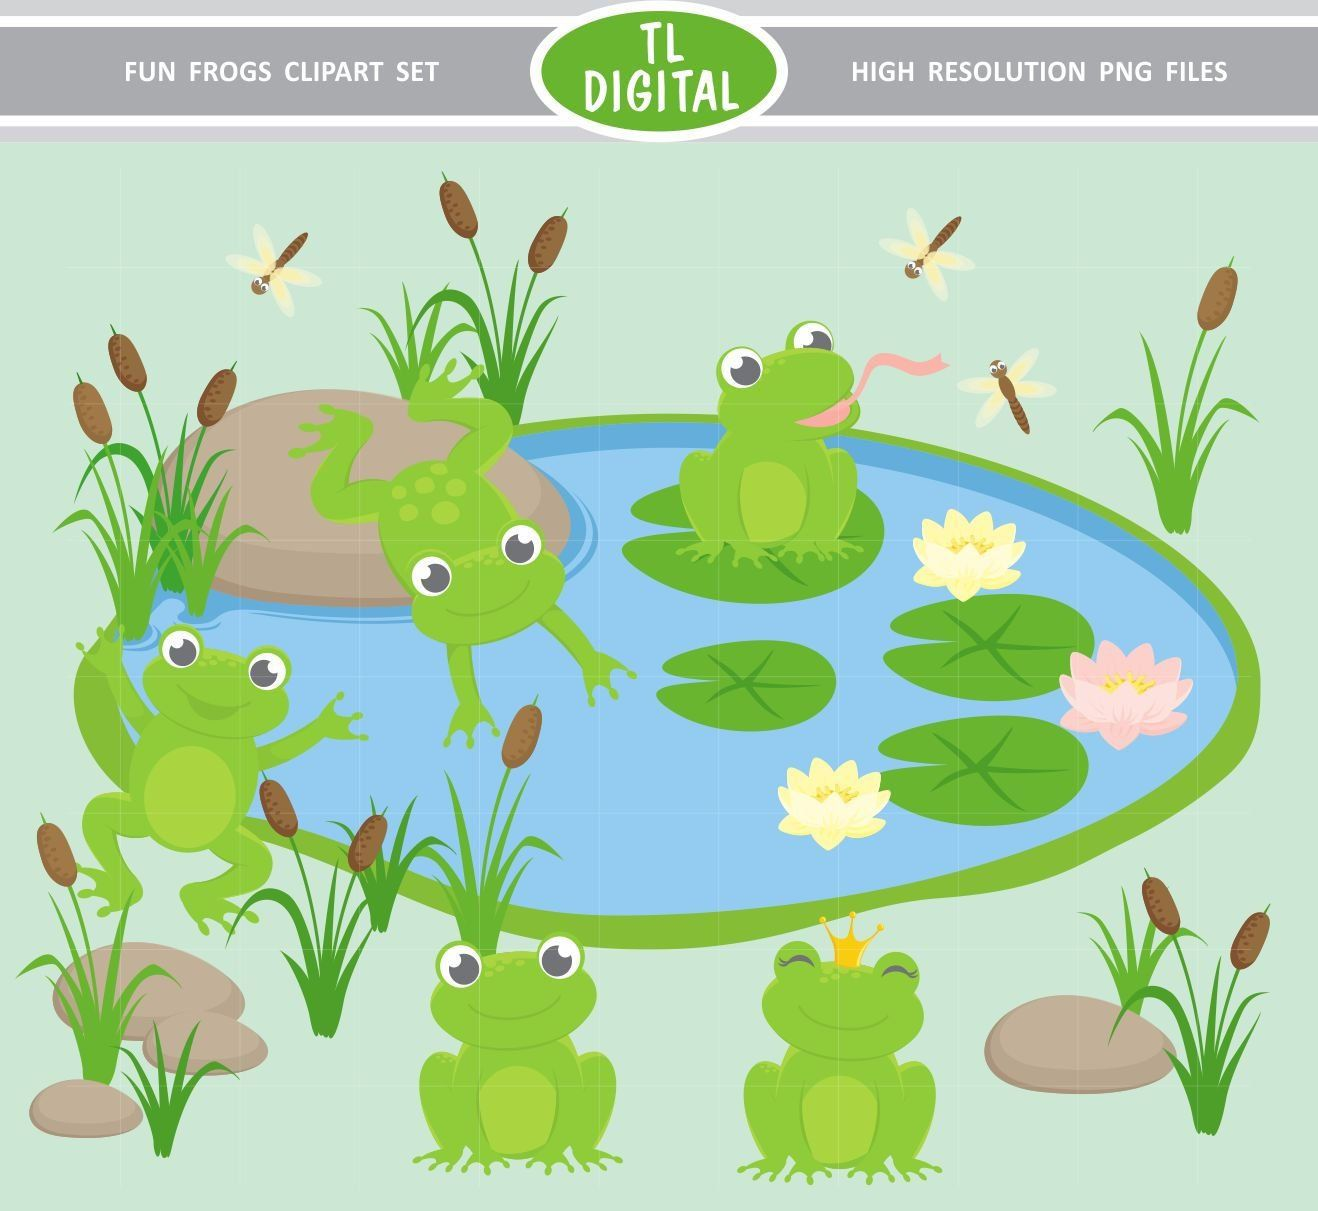 Frog Fun Clipart Set Cute Pond High Resolution Png Files 17 Clipart Illustrations Clip Art Printable Stationery Cute Frogs